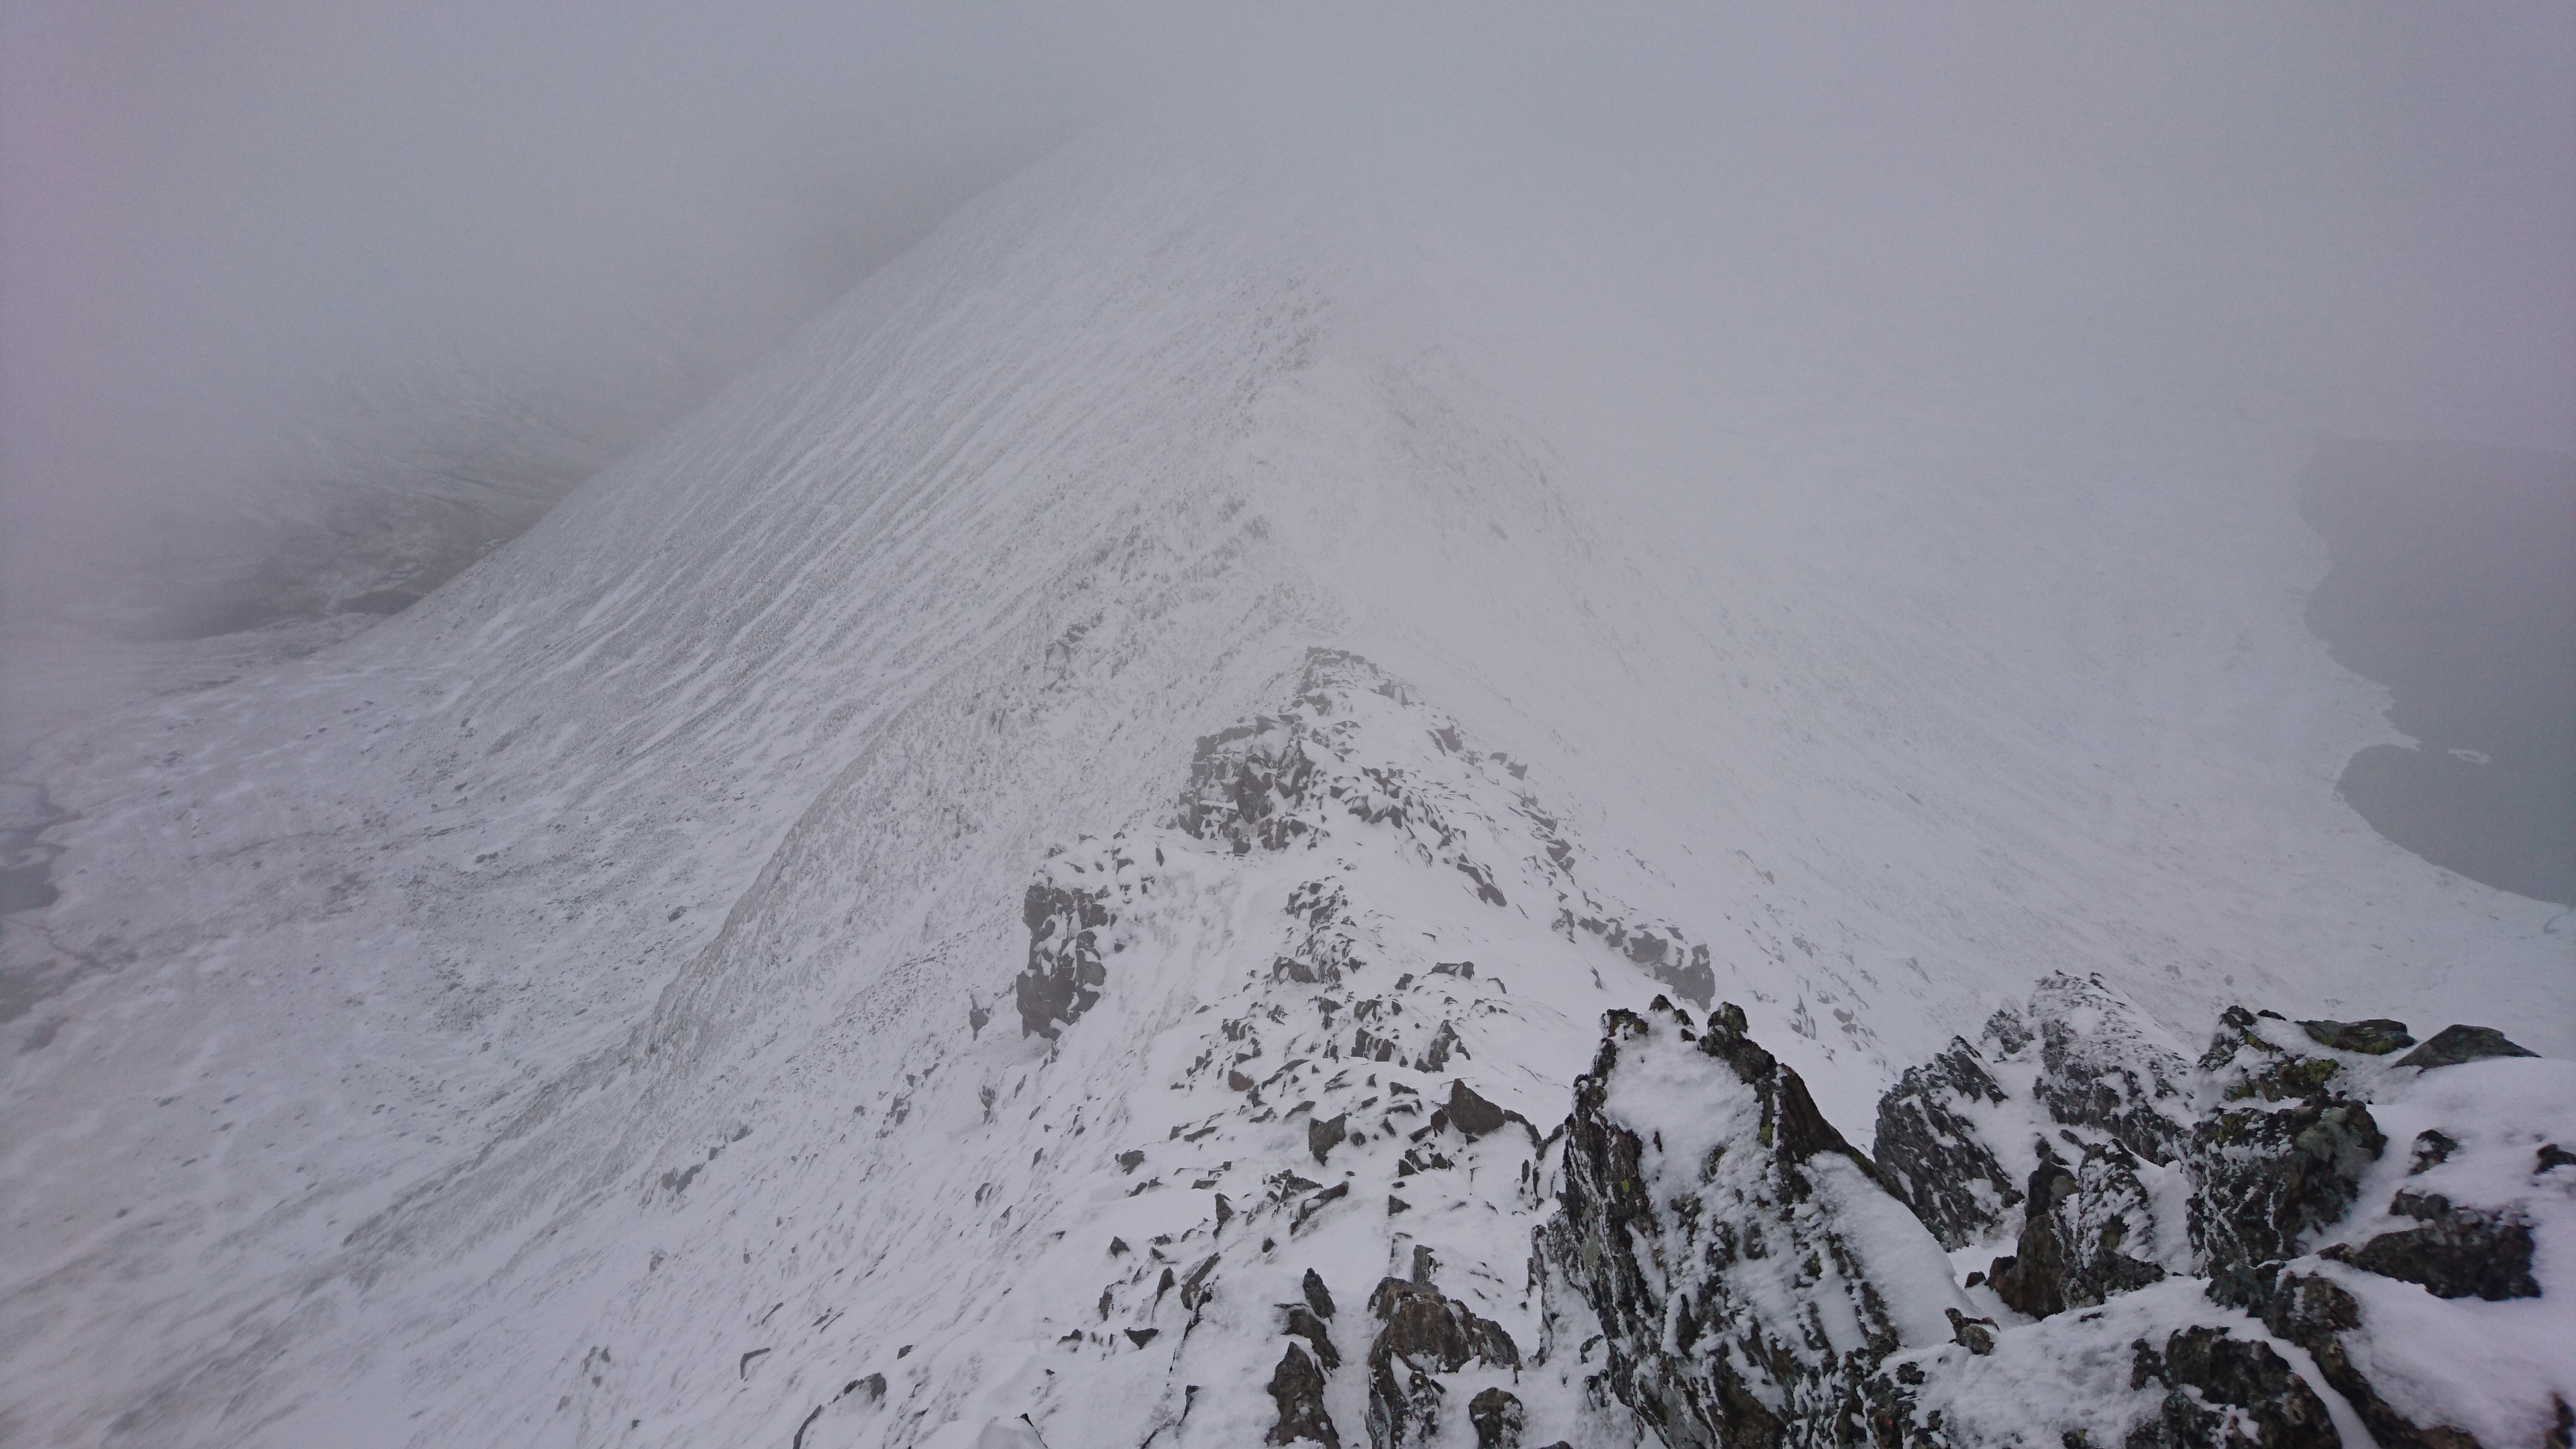 Heading down Swirral Edge